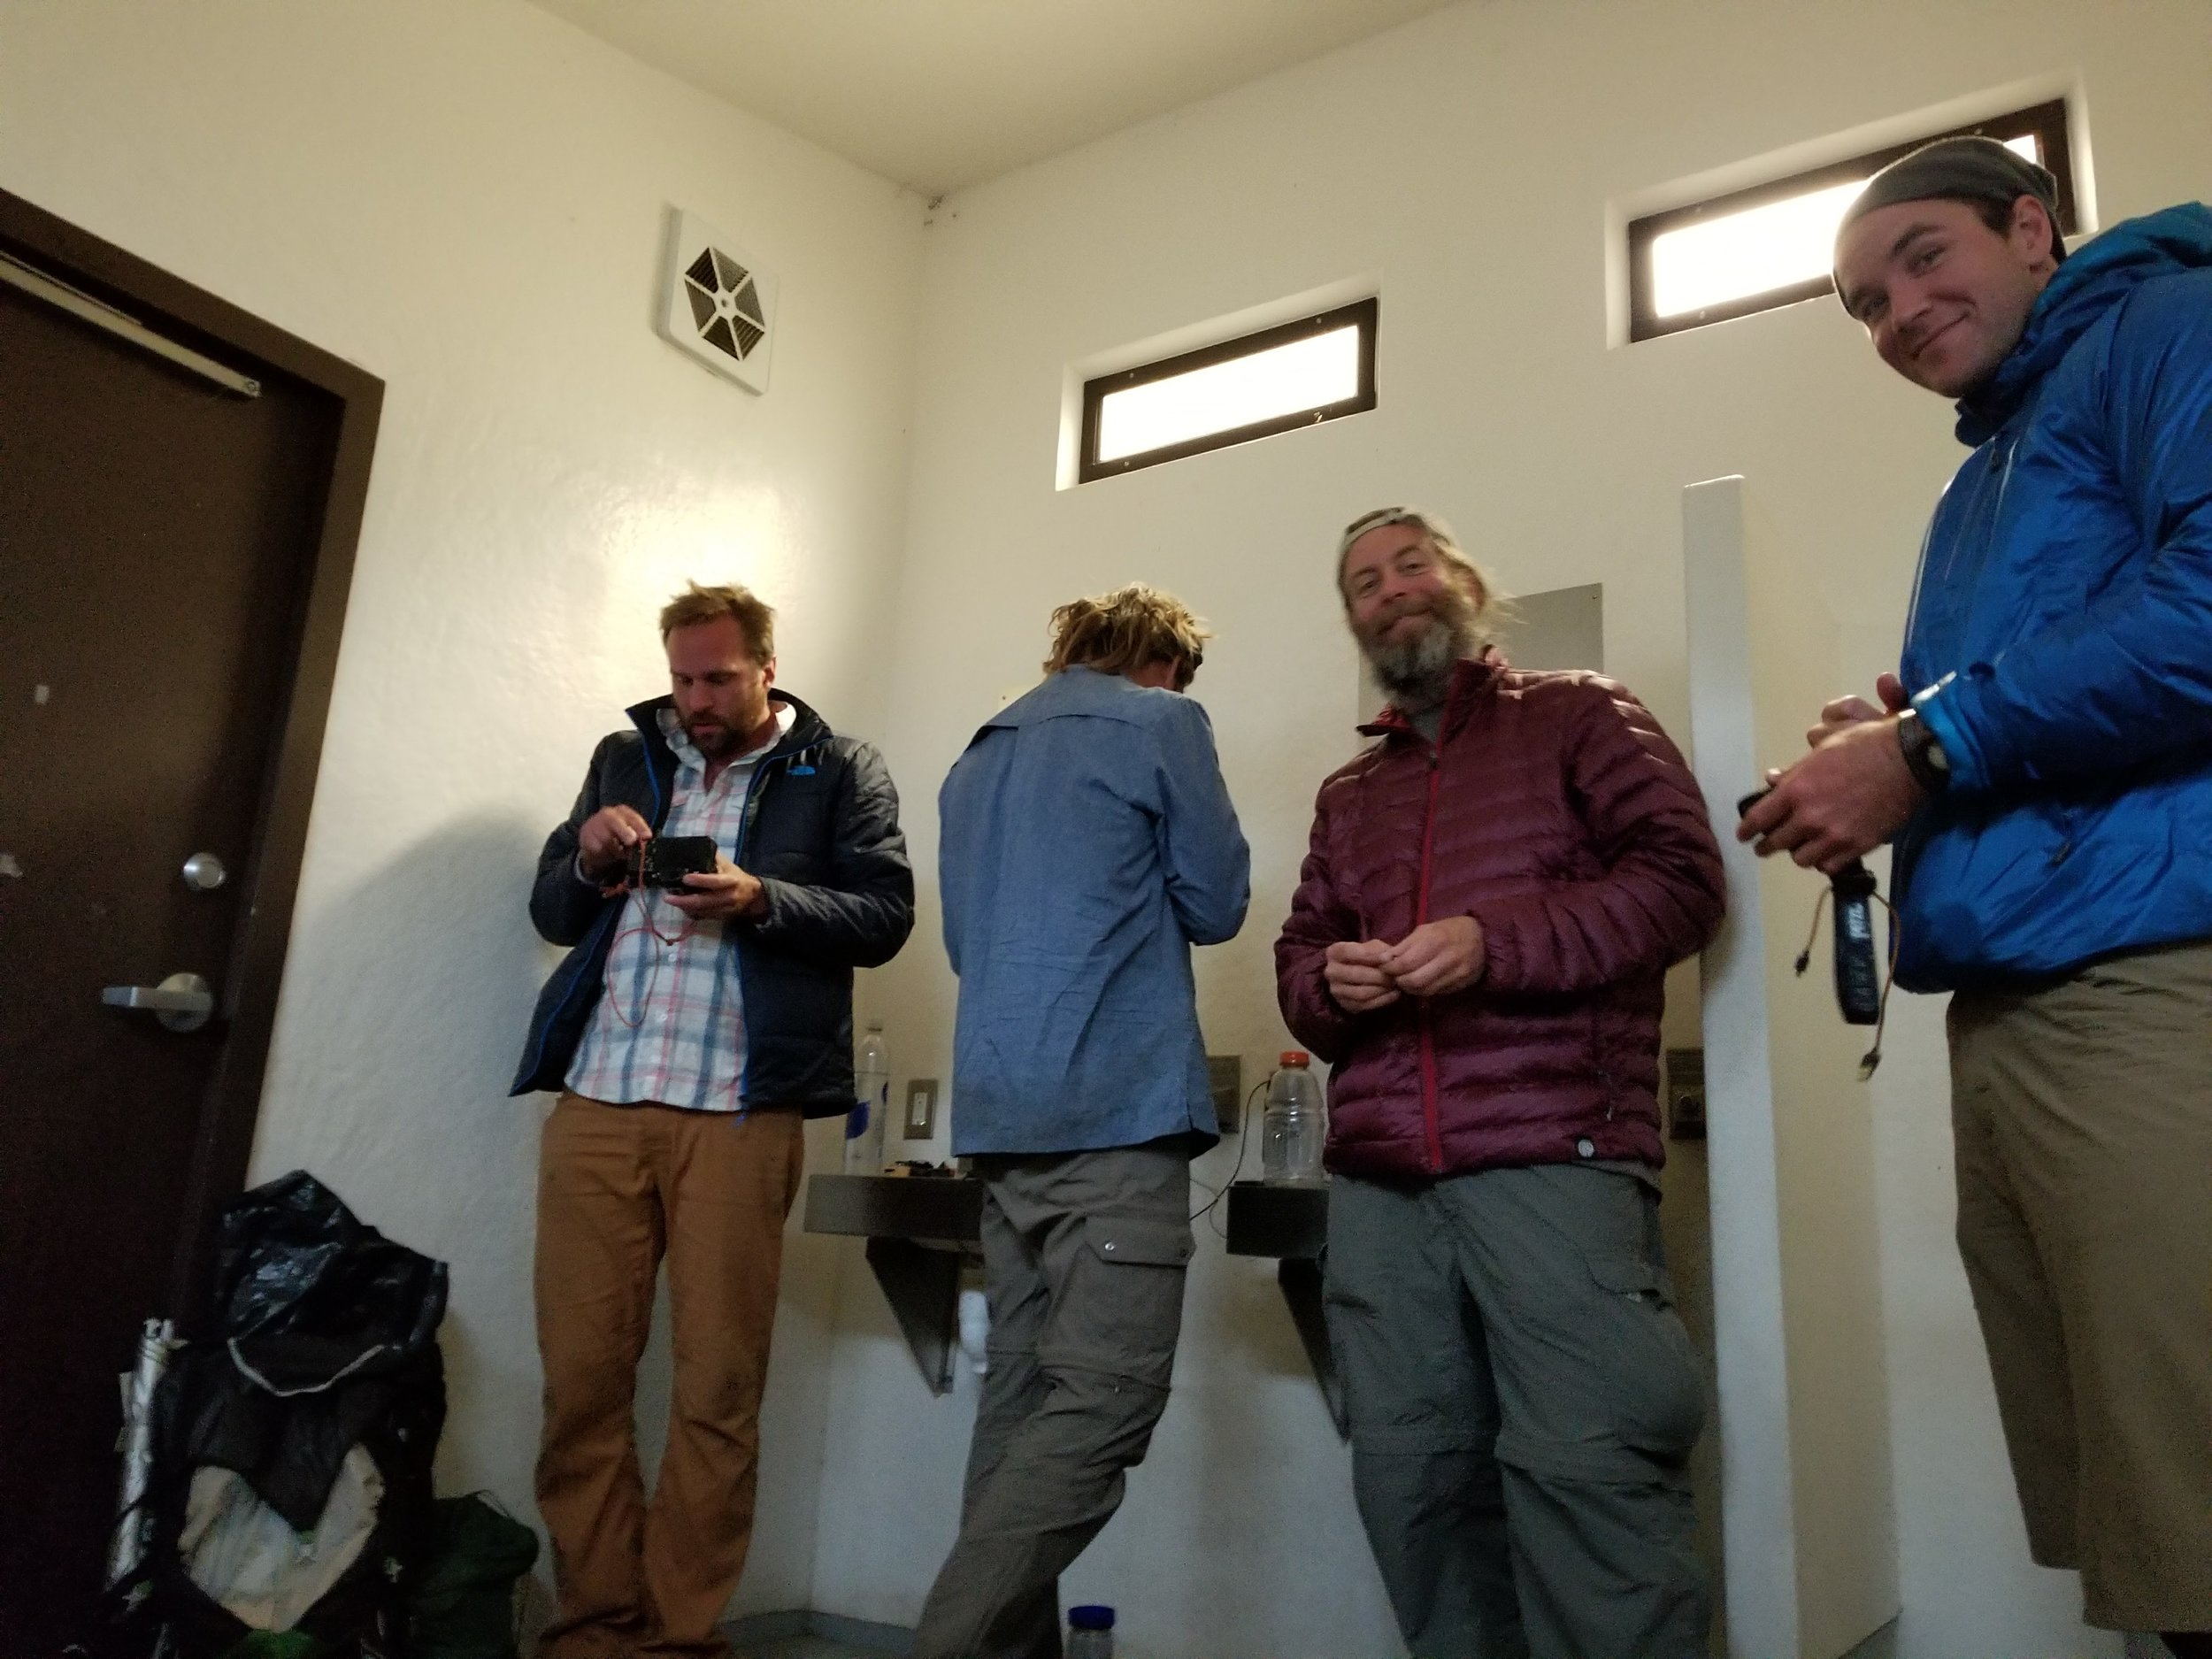 The only picture I bothered taking today to capture the really excellent experience of eating ramen right next to a camp toilet with four strange men.  #livingthedream.